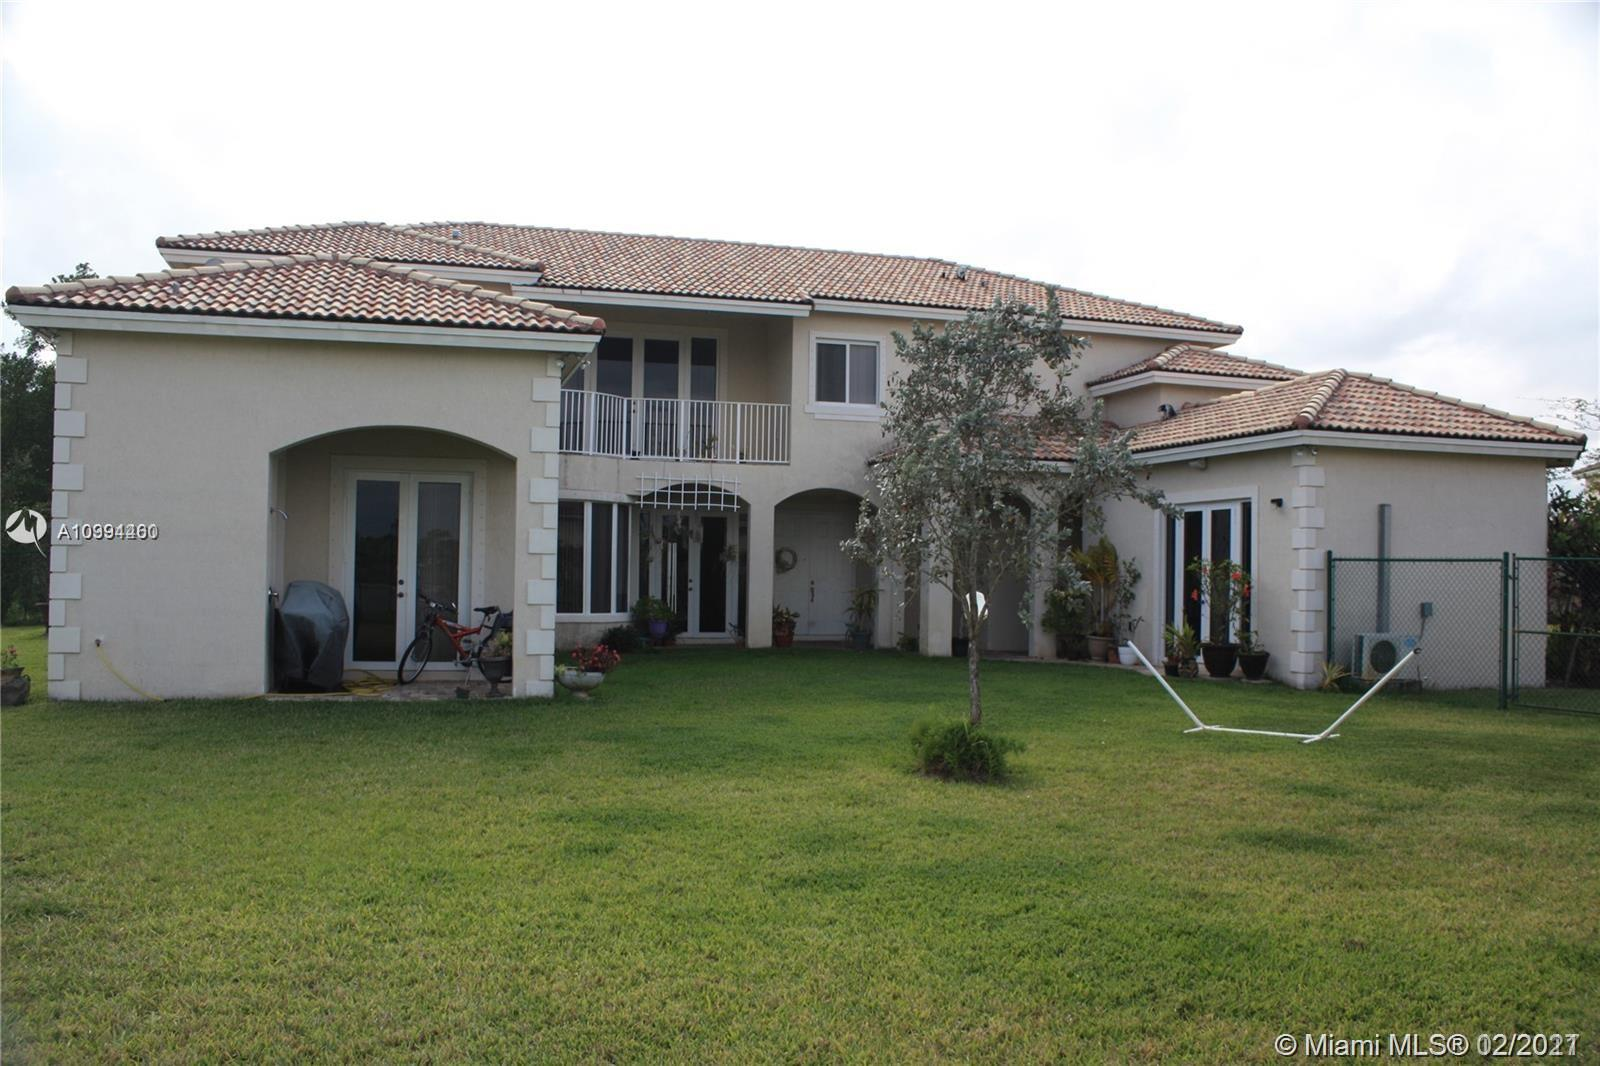 Beautiful 2 story home on large corner lot in the desirable gated community of Palm Isle Estates at Keys Gate!  This 5 bedroom 6 bath home features a separate in-laws quarters with full bedroom and bath, huge eat-in kitchen with granite counters, tiled first floor and carpet upstairs.  This beauty is on an oversized canal lot with a fenced in backyard.   Also has a courtyard area perfect for entertaining. Rent includes: 24 hour roving security,  AT&T cable and internet, alarm monitoring, tennis courts and more. Owner requires first and double security deposit, full credit reports and proof of employment, and association application fee for background checks.